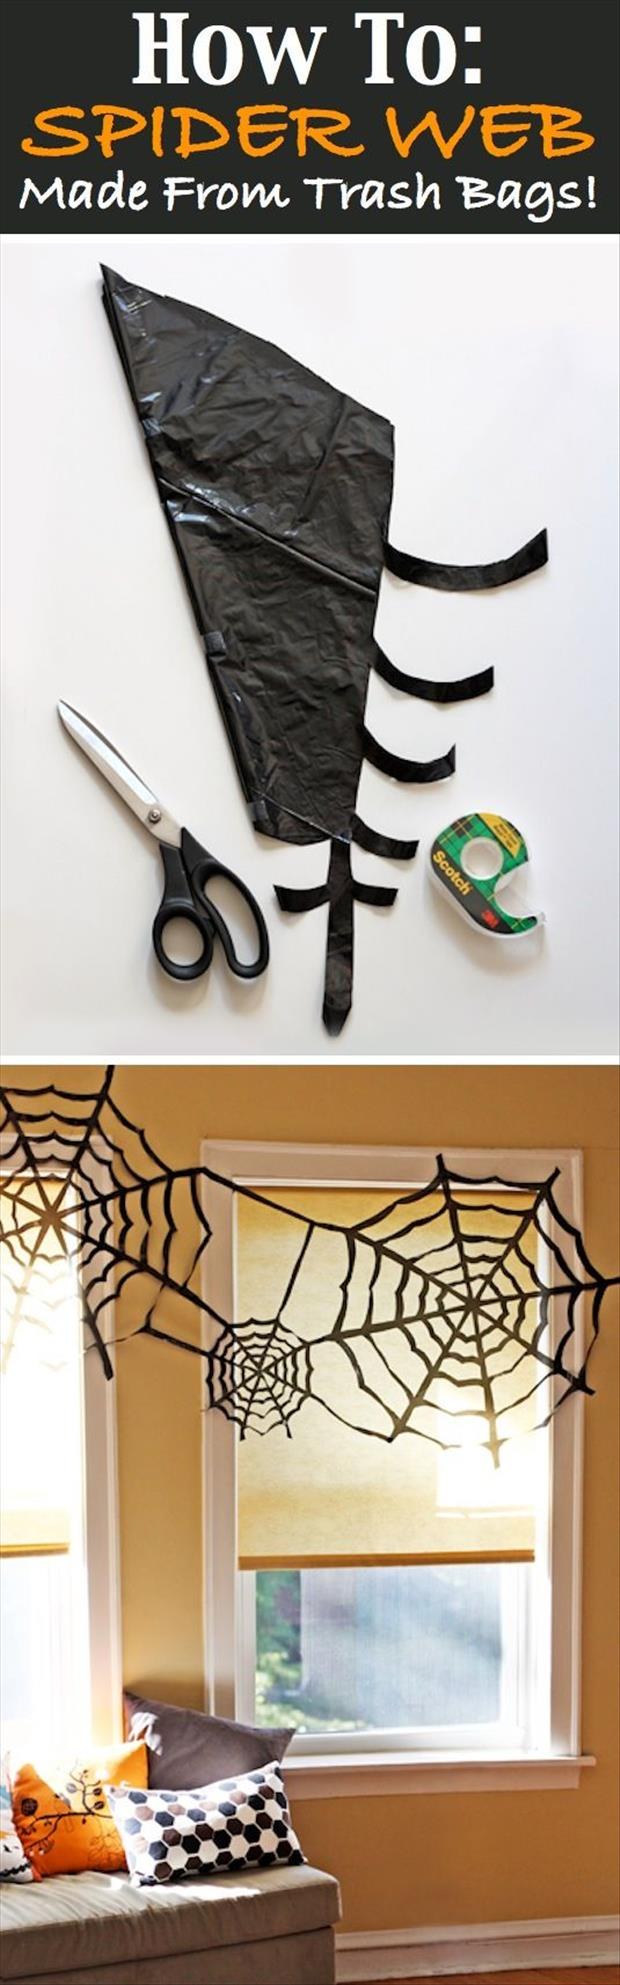 craft ideas (1)